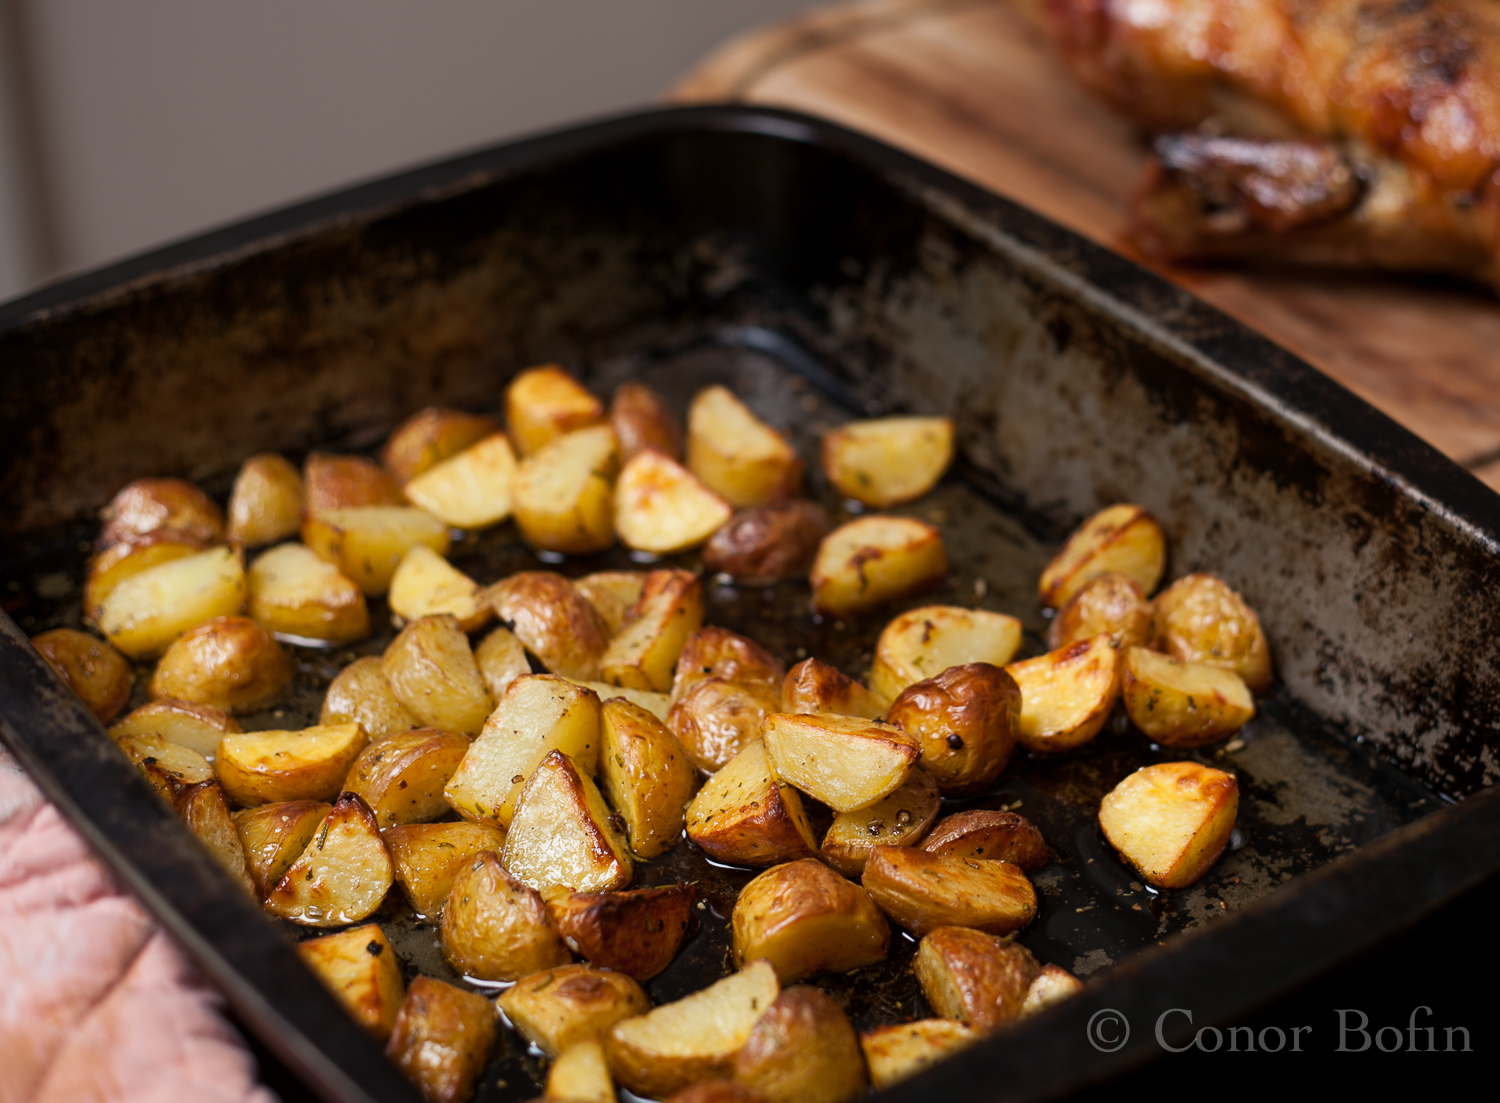 A delicious side dish of potatoes roasted in duck fat.